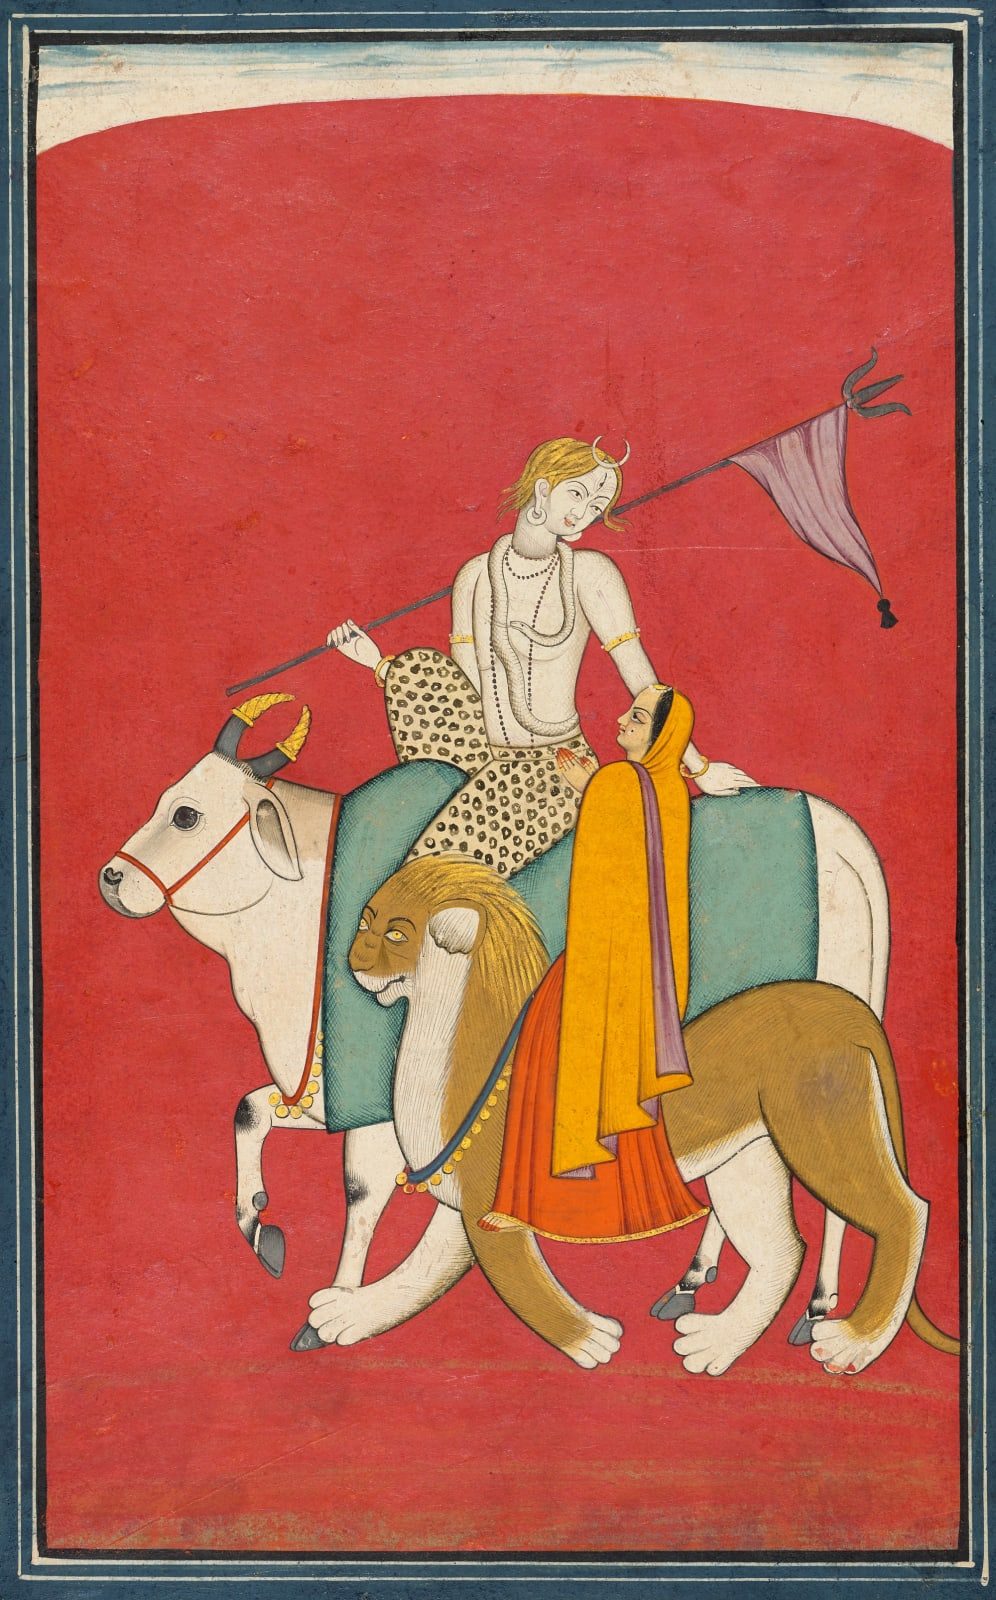 Shiva and Parvati riding their Vehicles Nandi the Bull and the Devi's Lion, Chamba, c. 1780-90